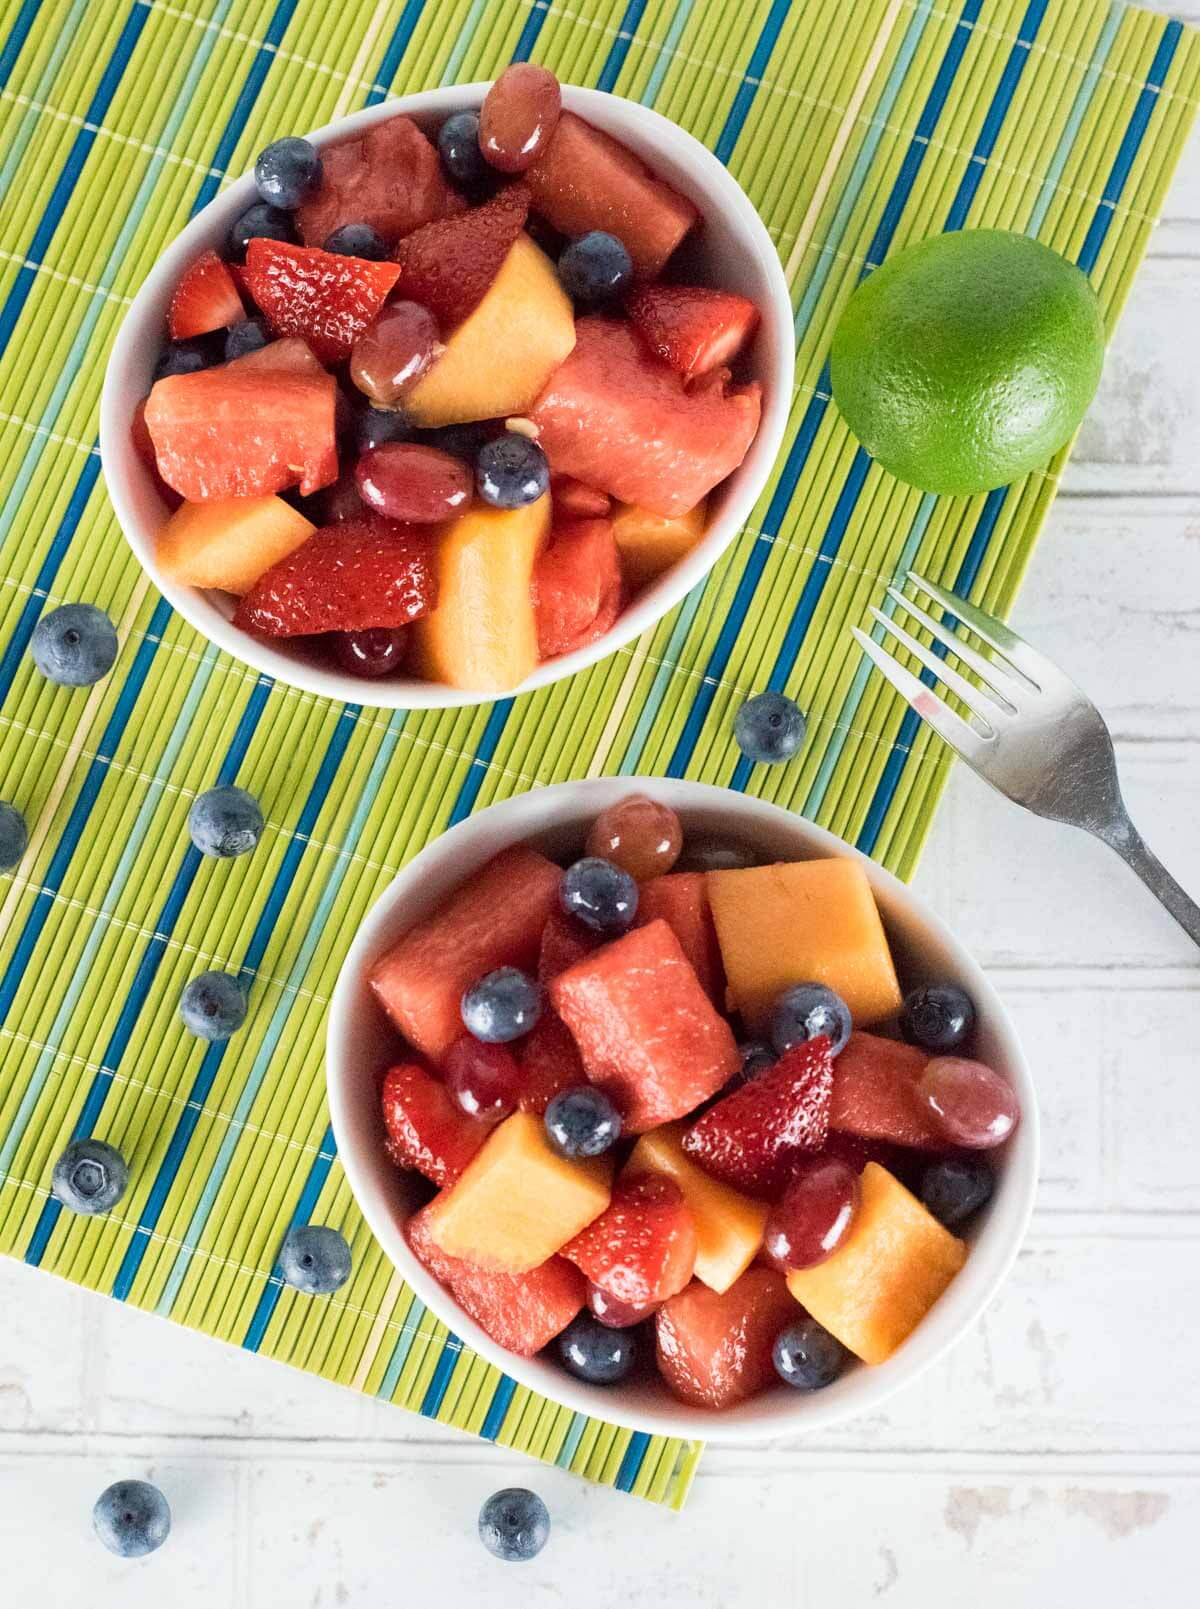 Best fruit for fruit salad - watermelon, blueberries, strawberries, melons, and grapes shown